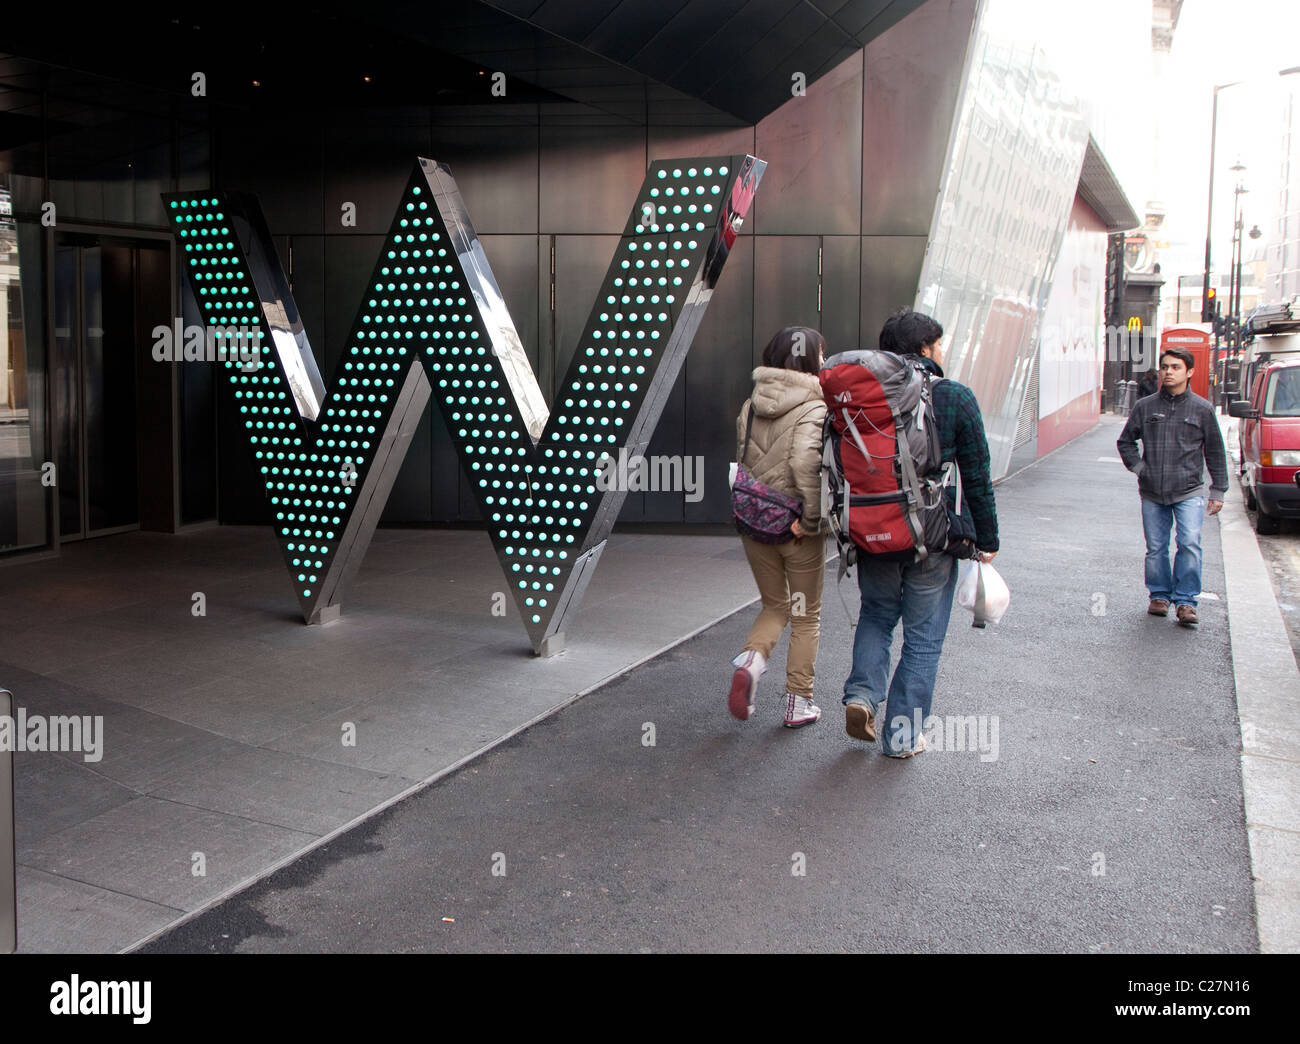 Entrance to W hotel, Leicester Square, London - Stock Image